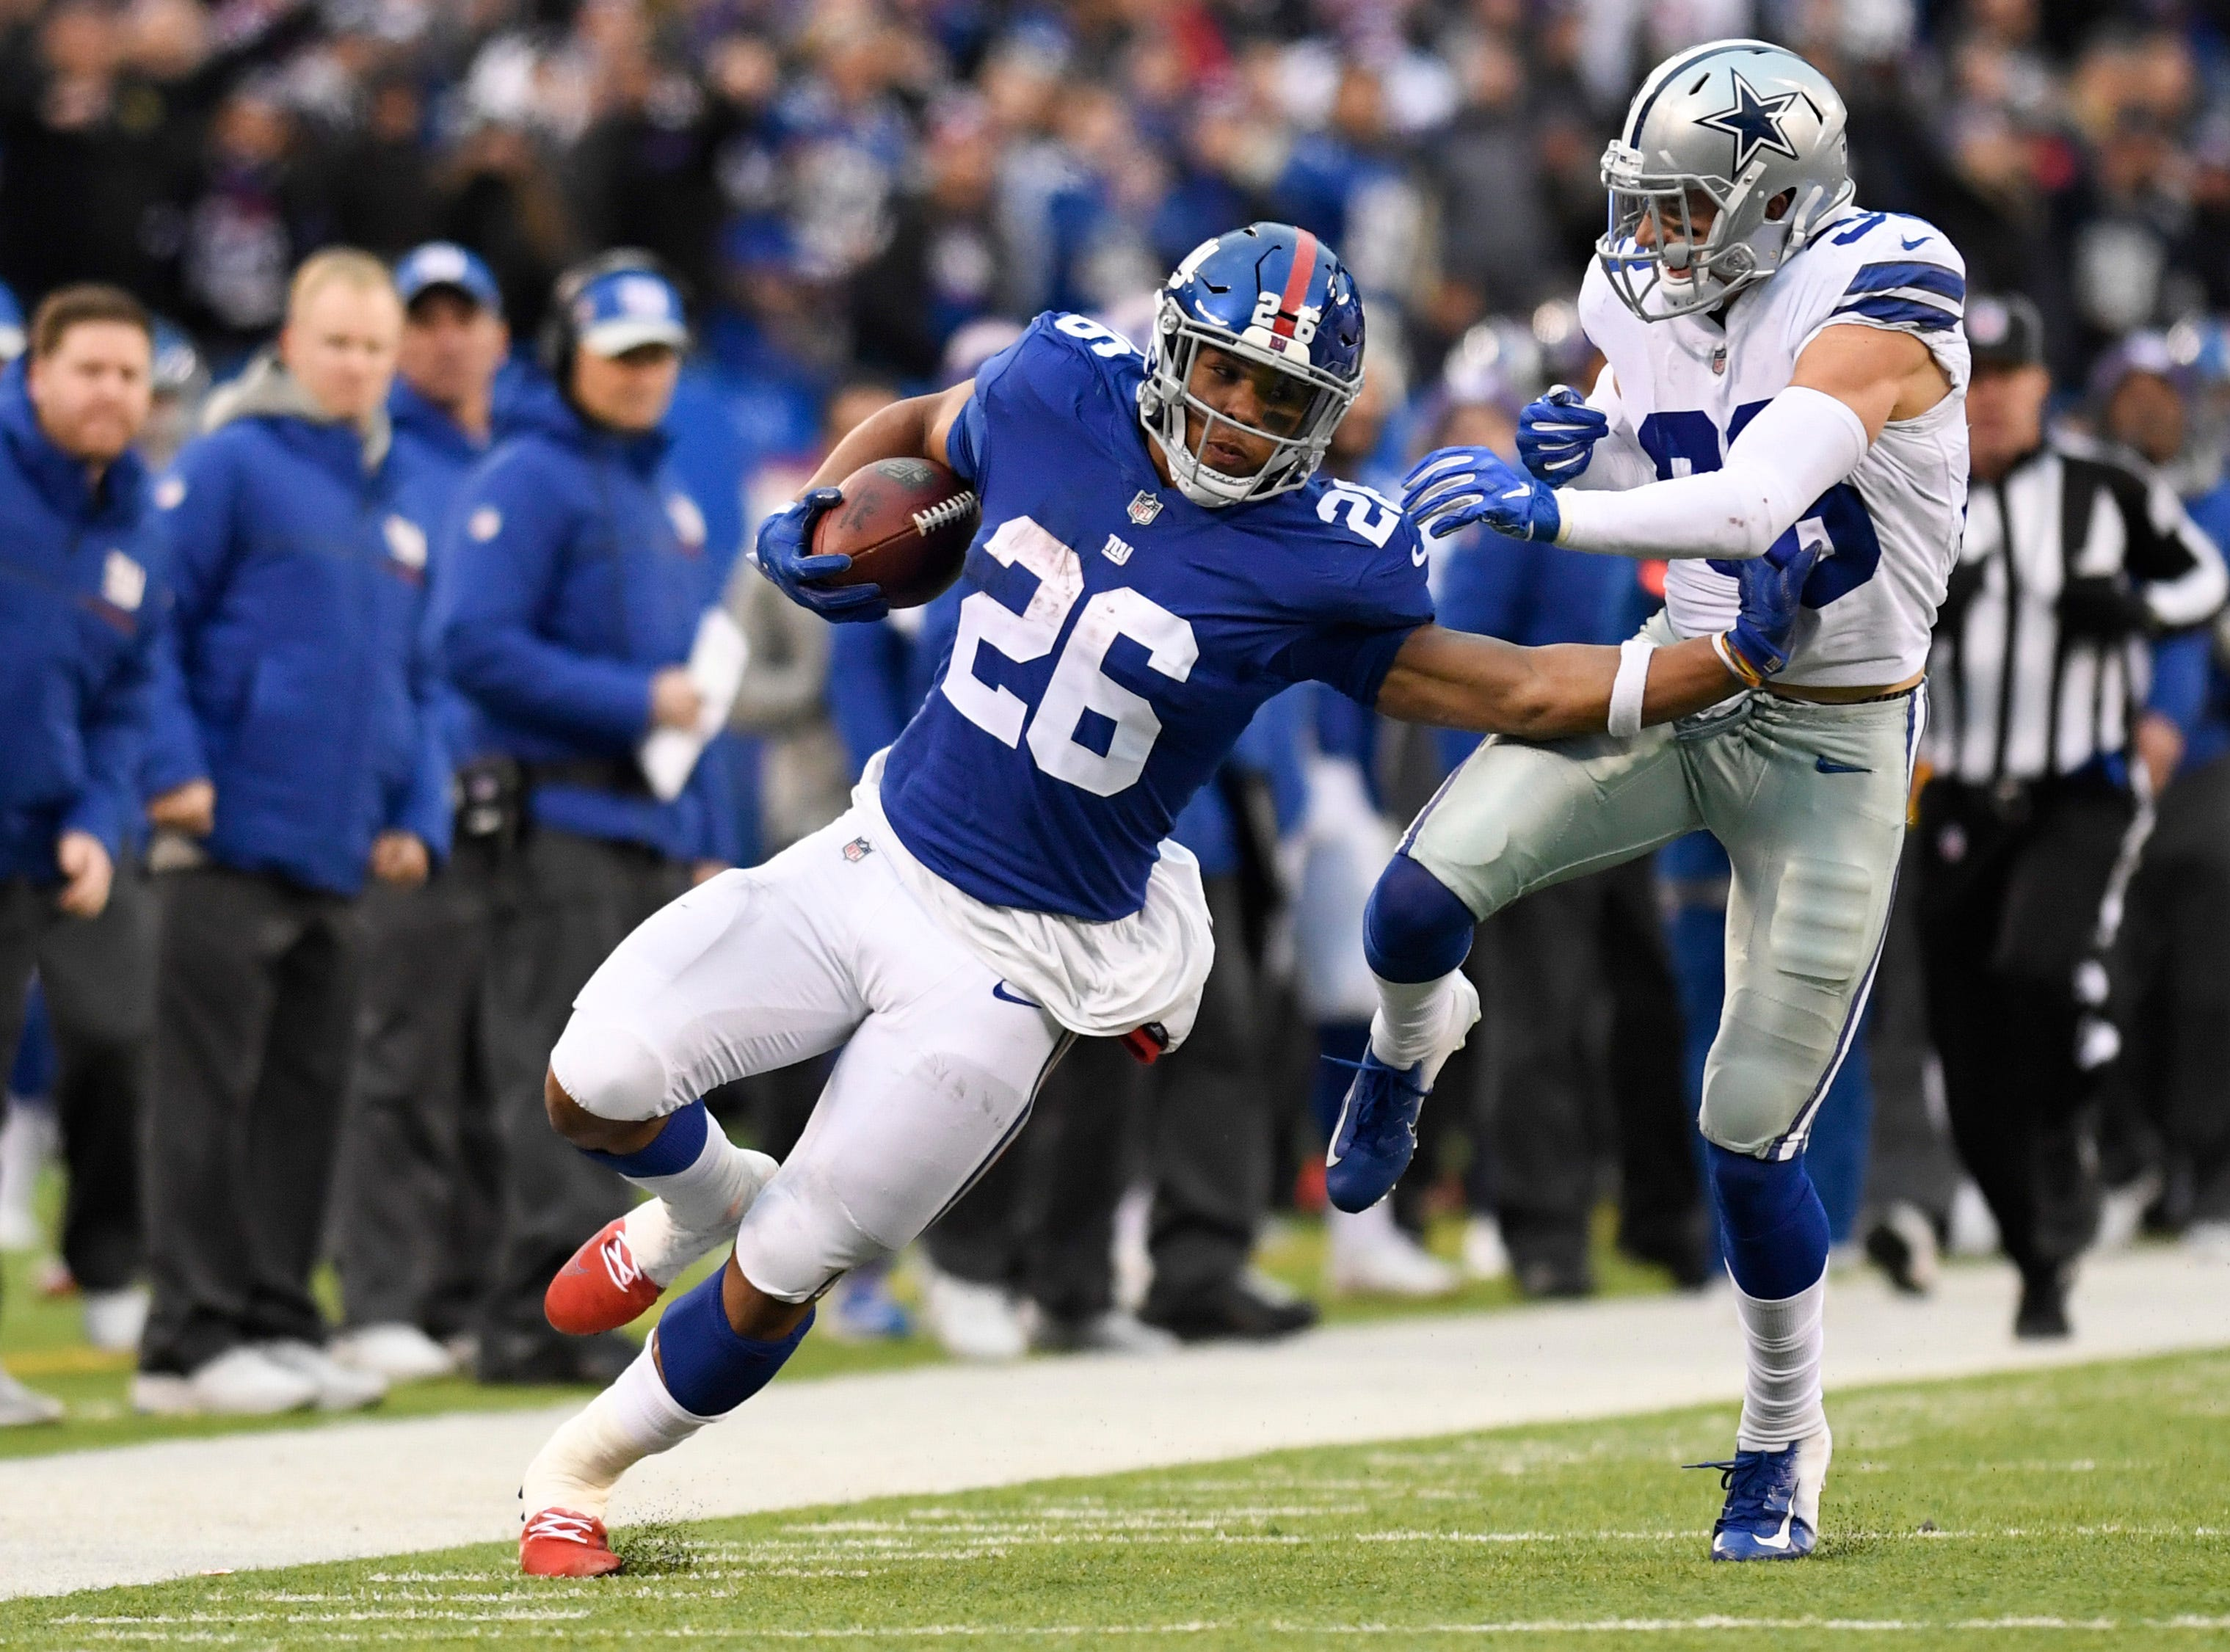 New York Giants running back Saquon Barkley (26) stiff-arms Dallas Cowboys strong safety Jeff Heath (38) in the second half. The New York Giants lose to the Dallas Cowboys 36-35 on Sunday, Dec. 30, 2018, in East Rutherford.